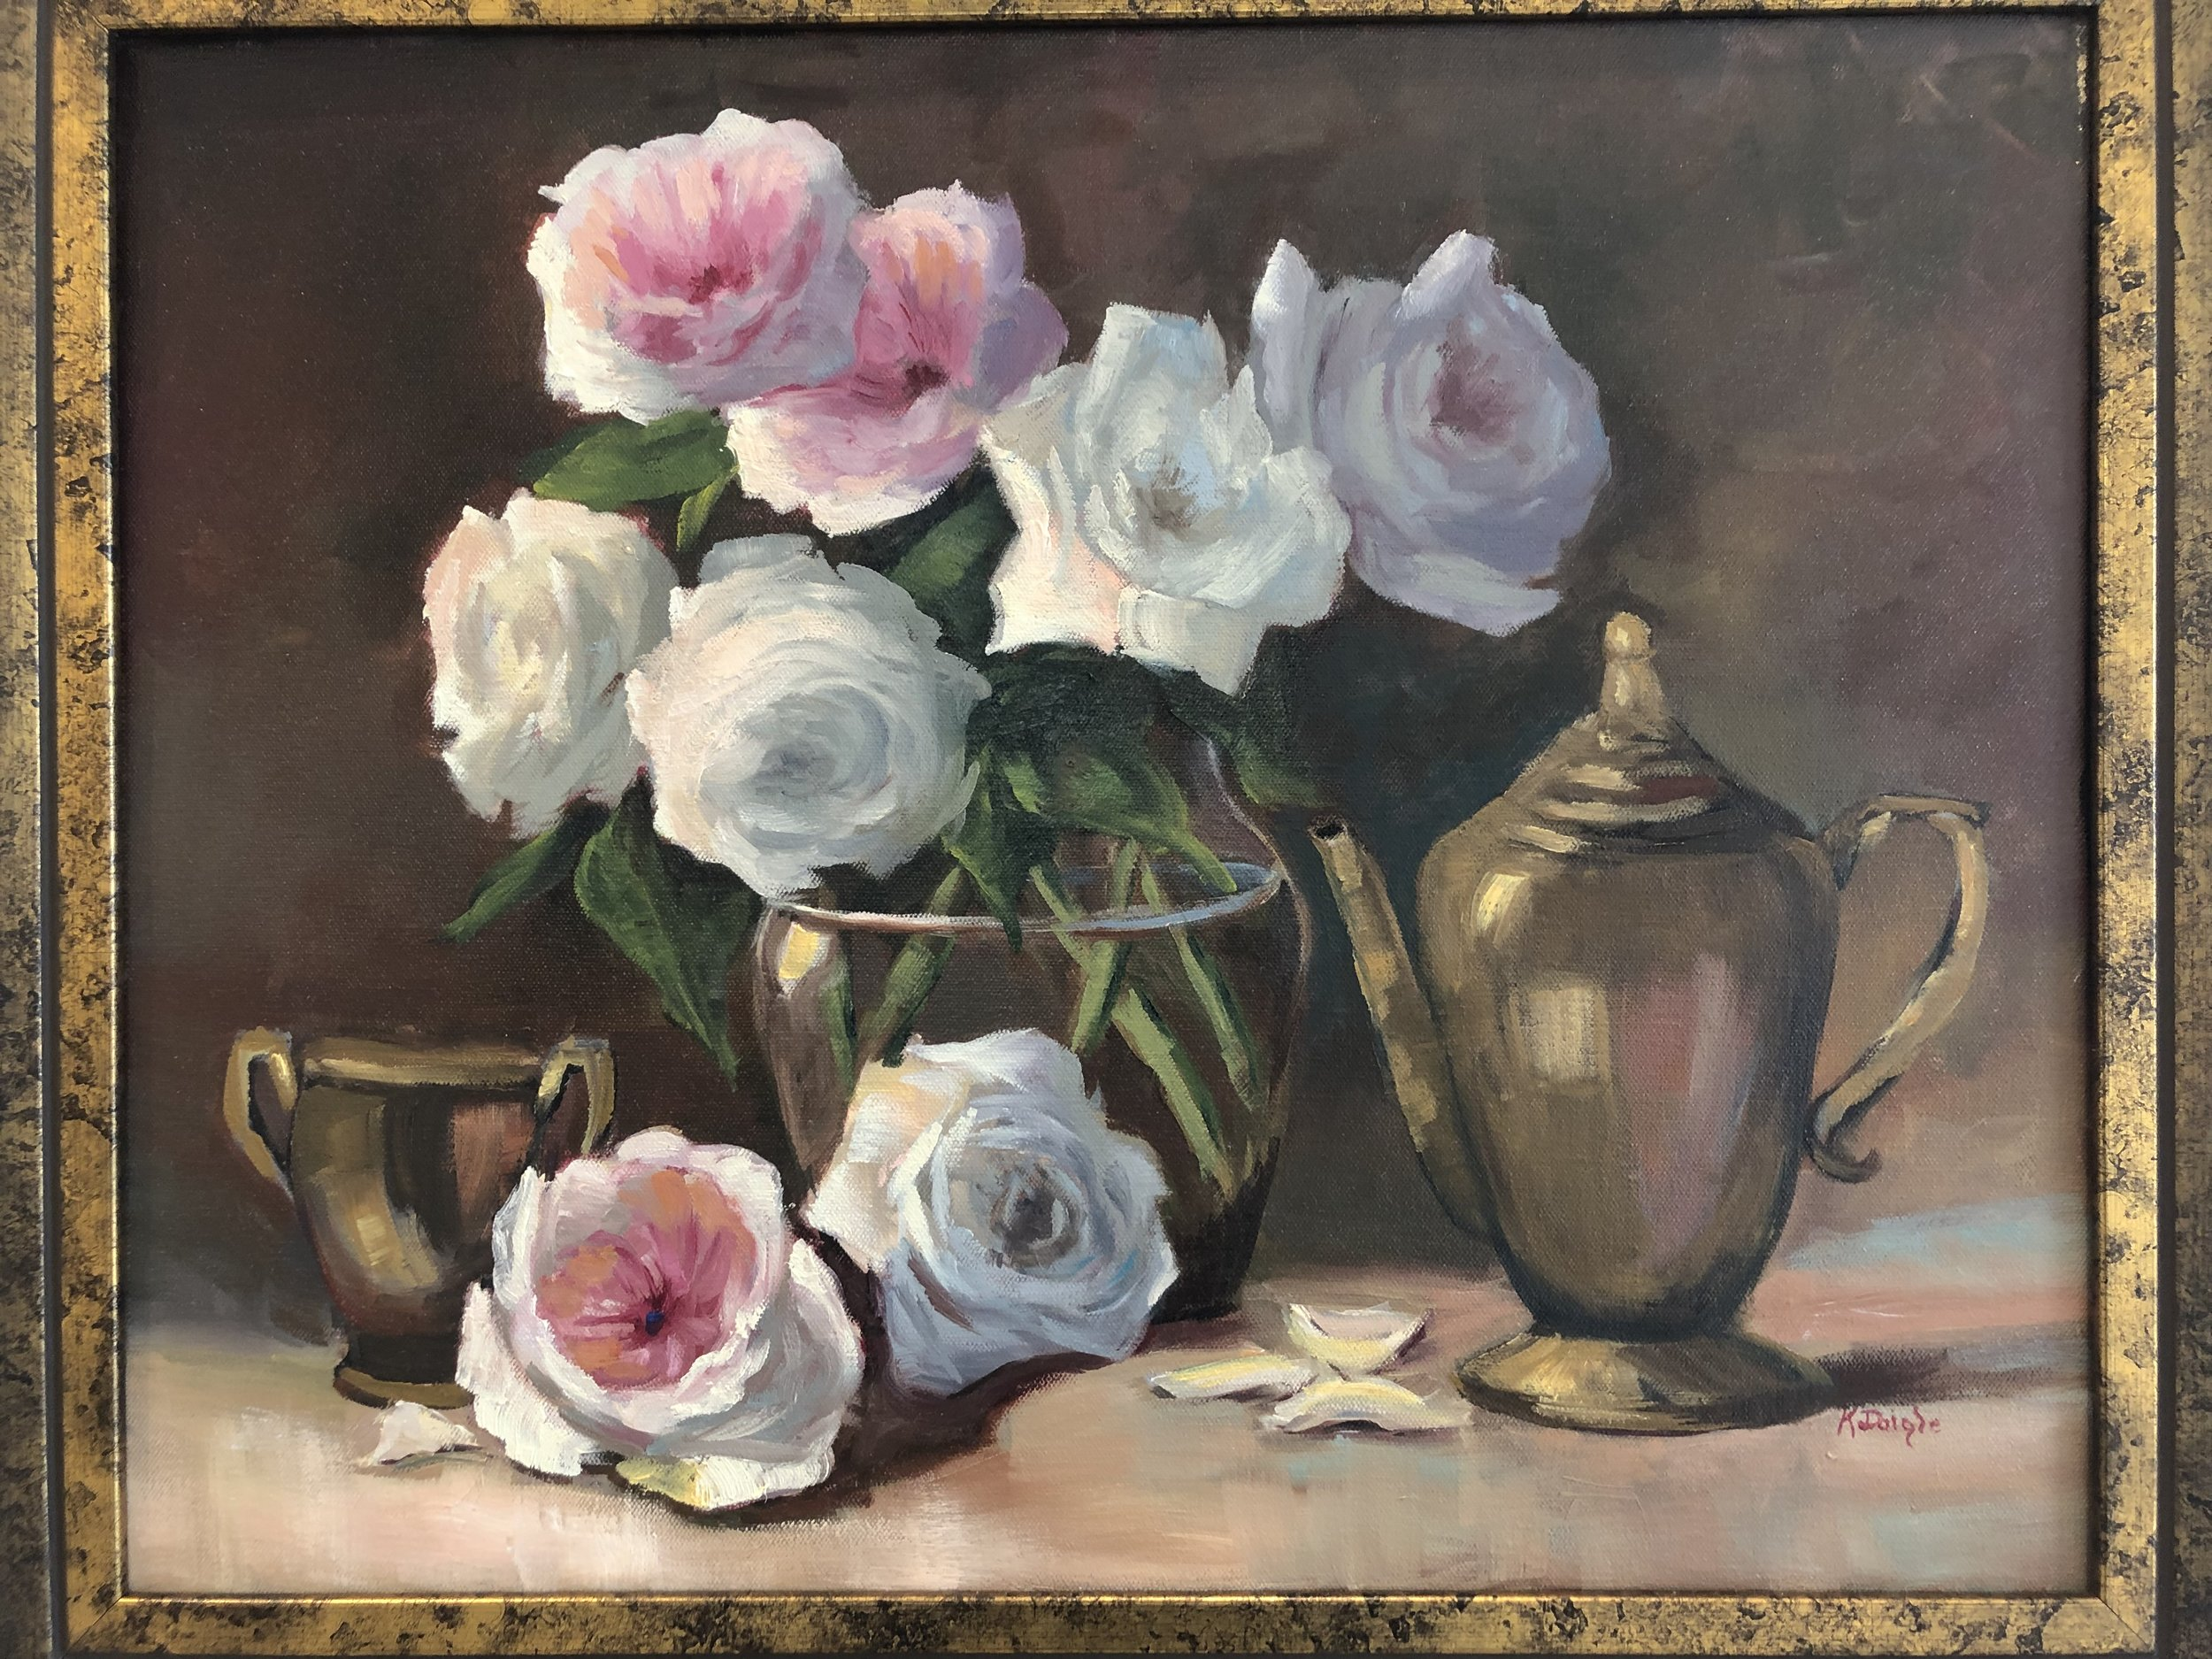 Summer Roses by Kathy Daigle